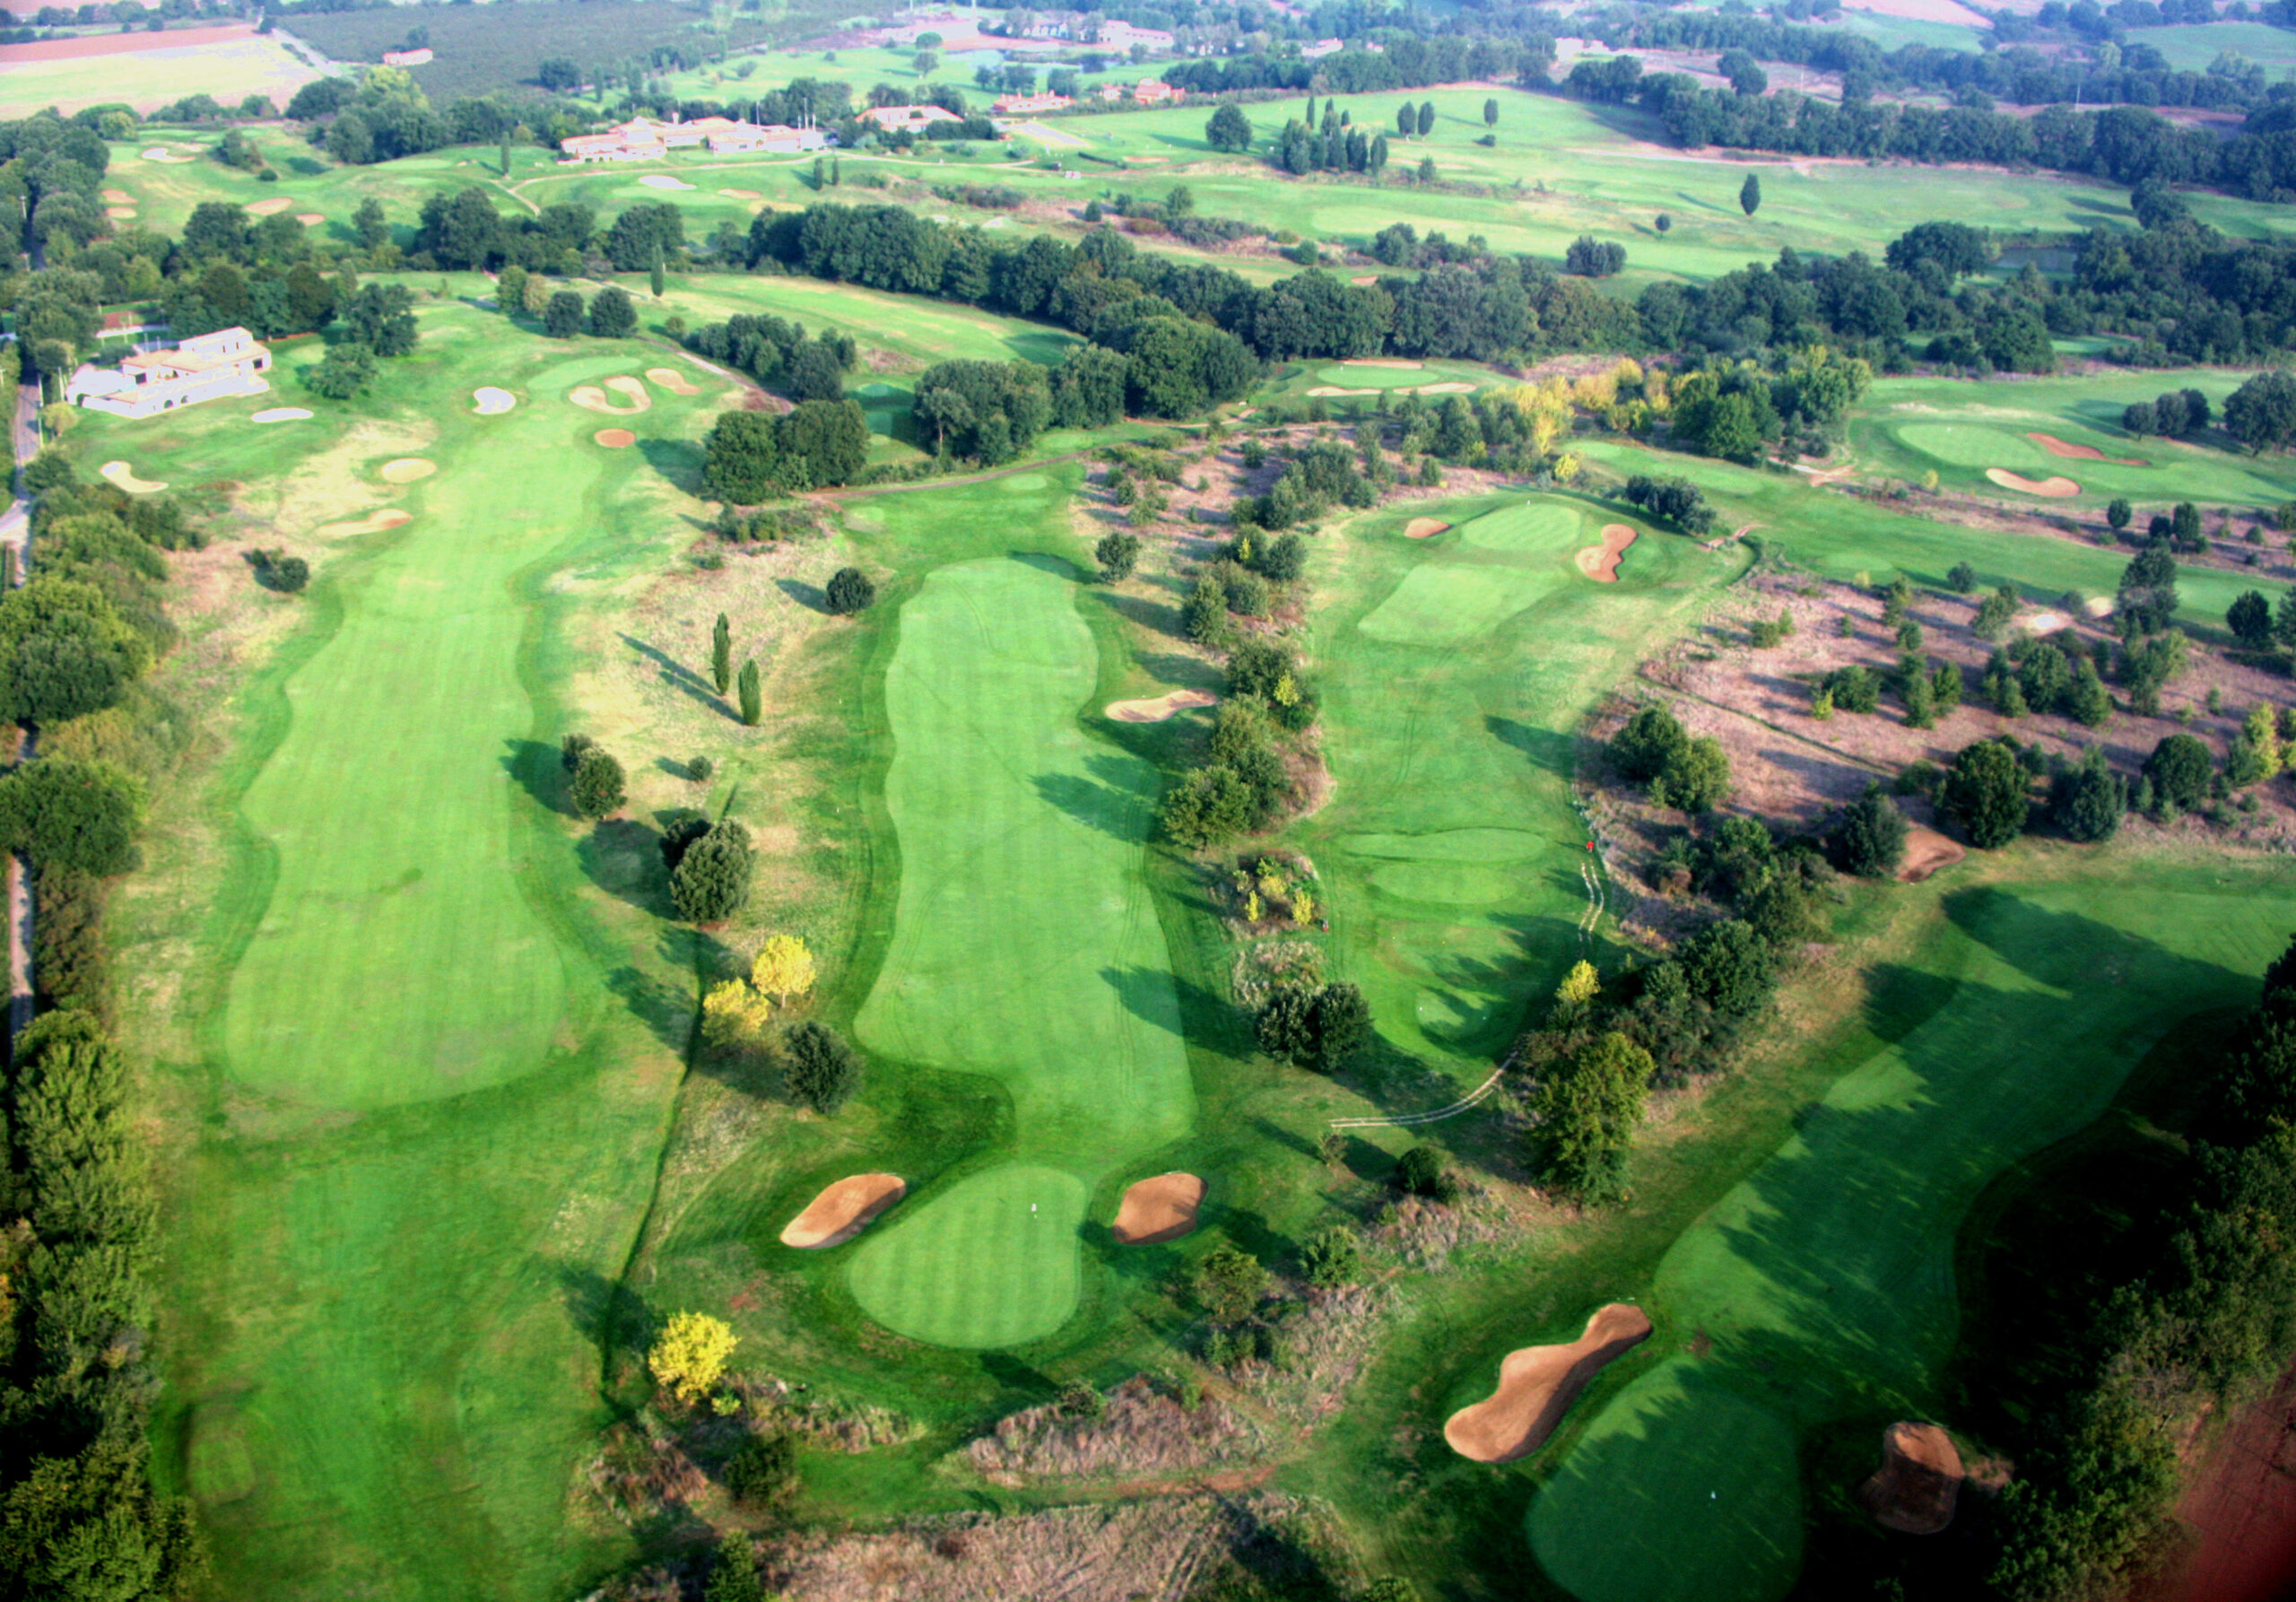 8Golf-Club-Nazionale-scaled